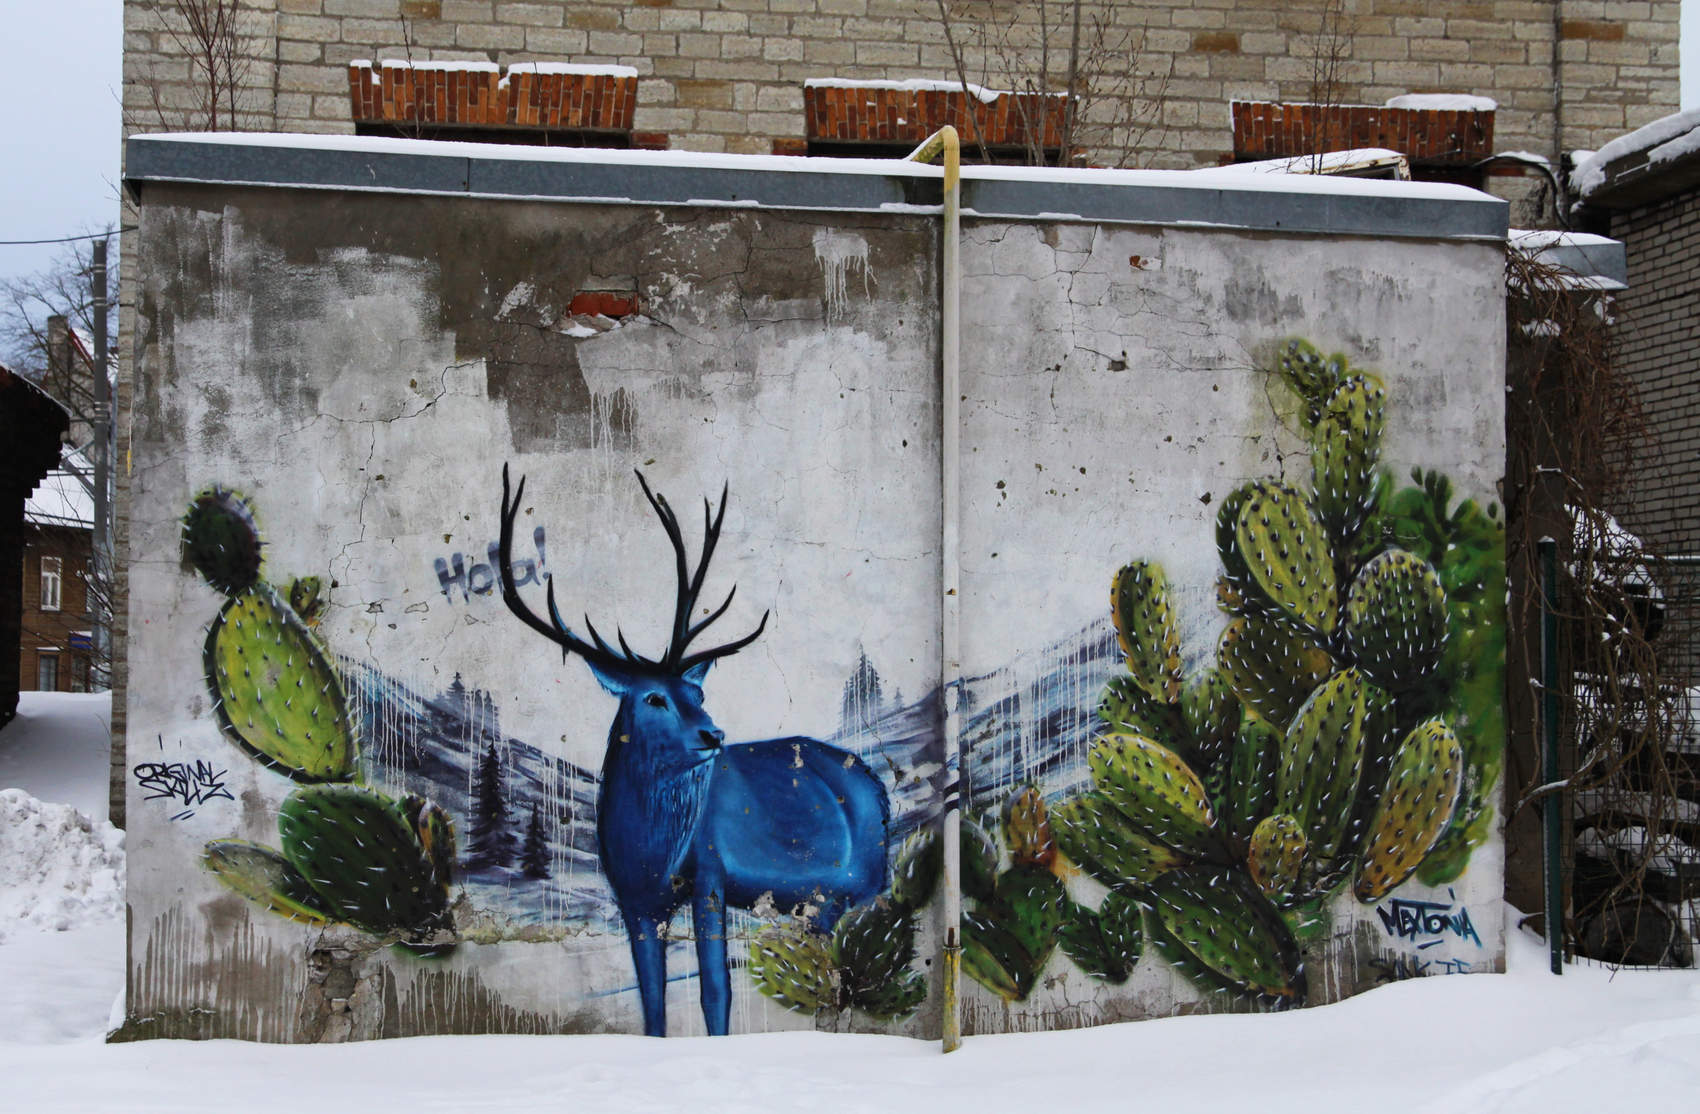 Blue deer - street art by Sänk in Tallinn, Estonia Photo: Mairit Krabbi